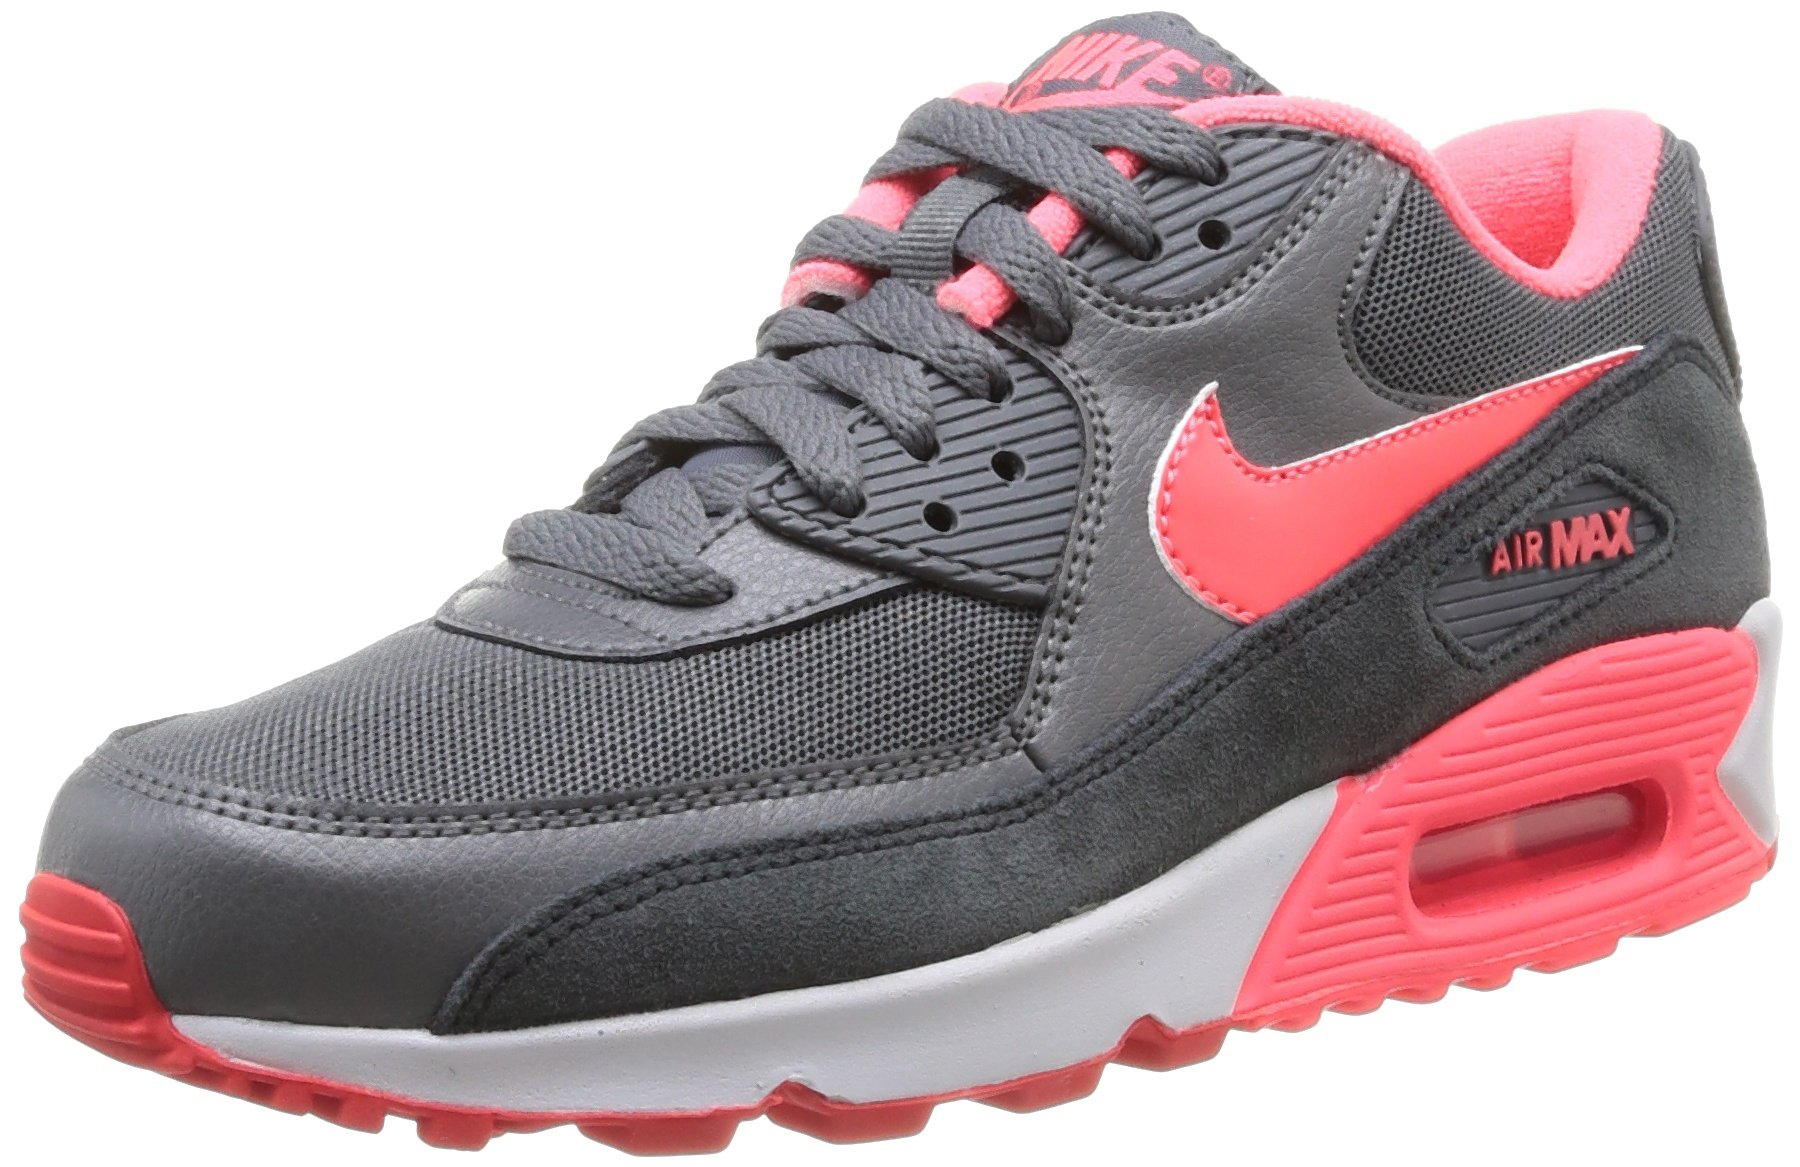 c2844257ec28d Galleon - NIKE AIR MAX 90 ESSENTIAL Womens Sneakers Running Shoes  616730-009 (USW 7.5)